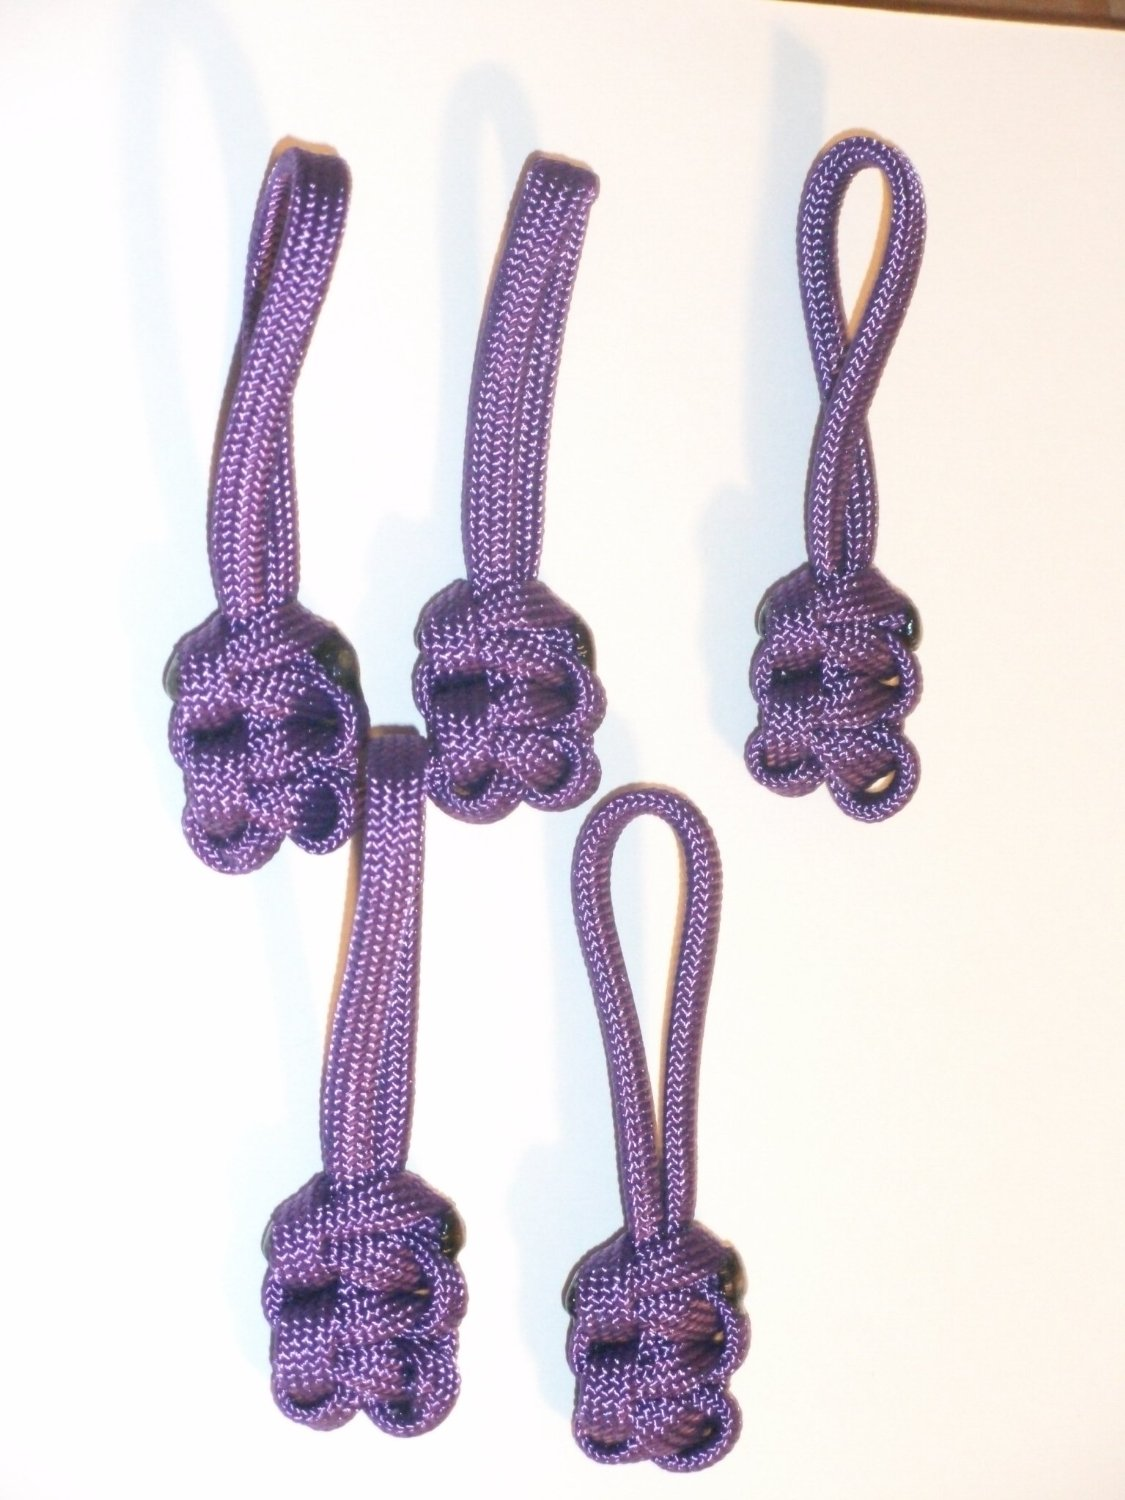 RedVex Paracord Zipper Pulls / Lanyards - Lot of 5 - ~2.5 - Purple